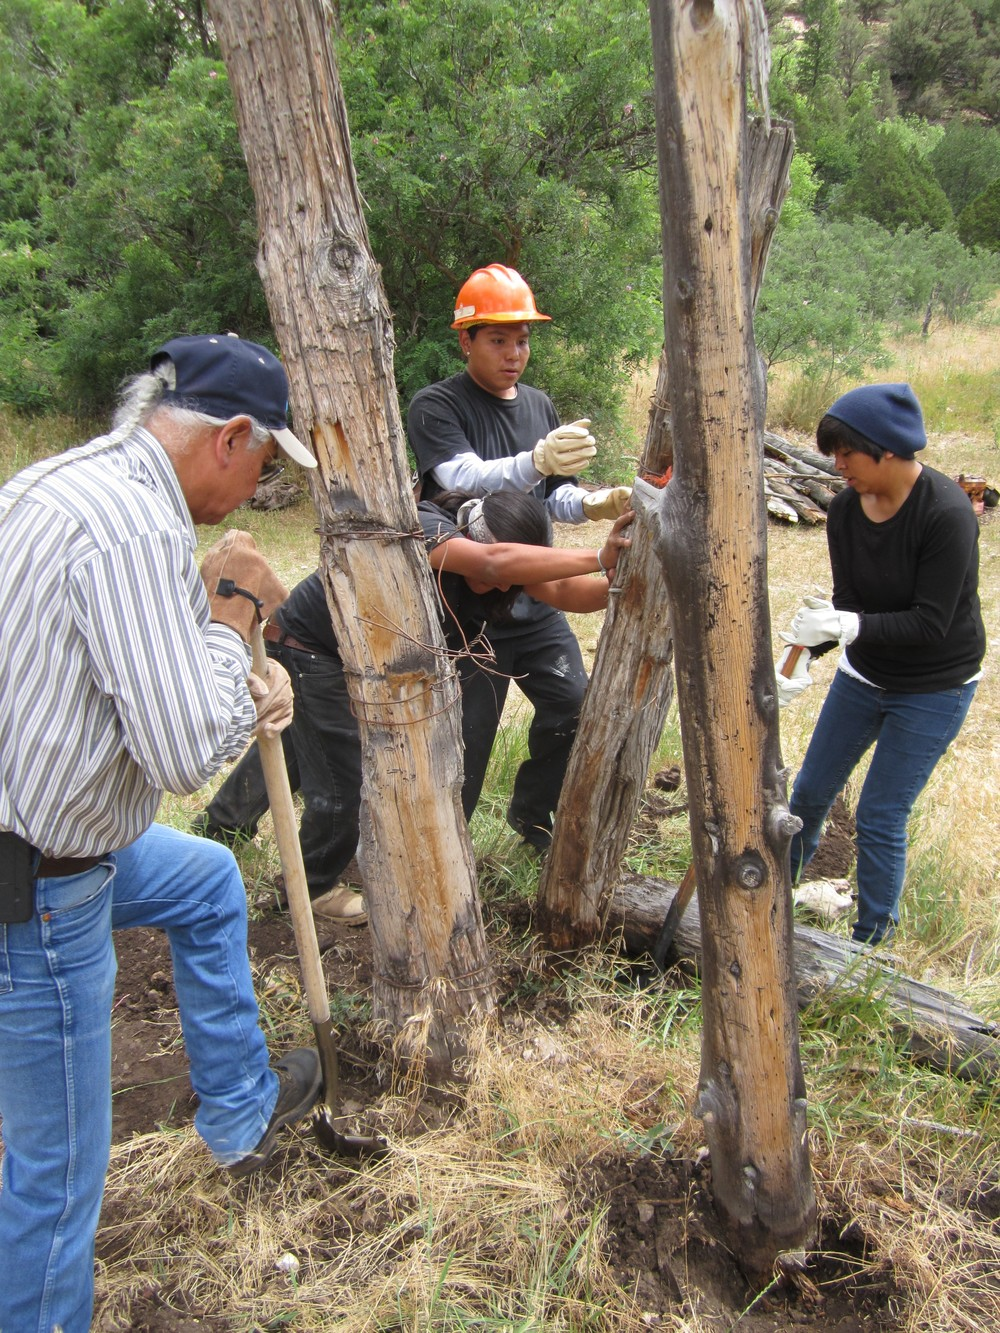 Volunteers removing decrepit fence posts during the rehabilitation of Castle Springs in Kaibab National Forest.